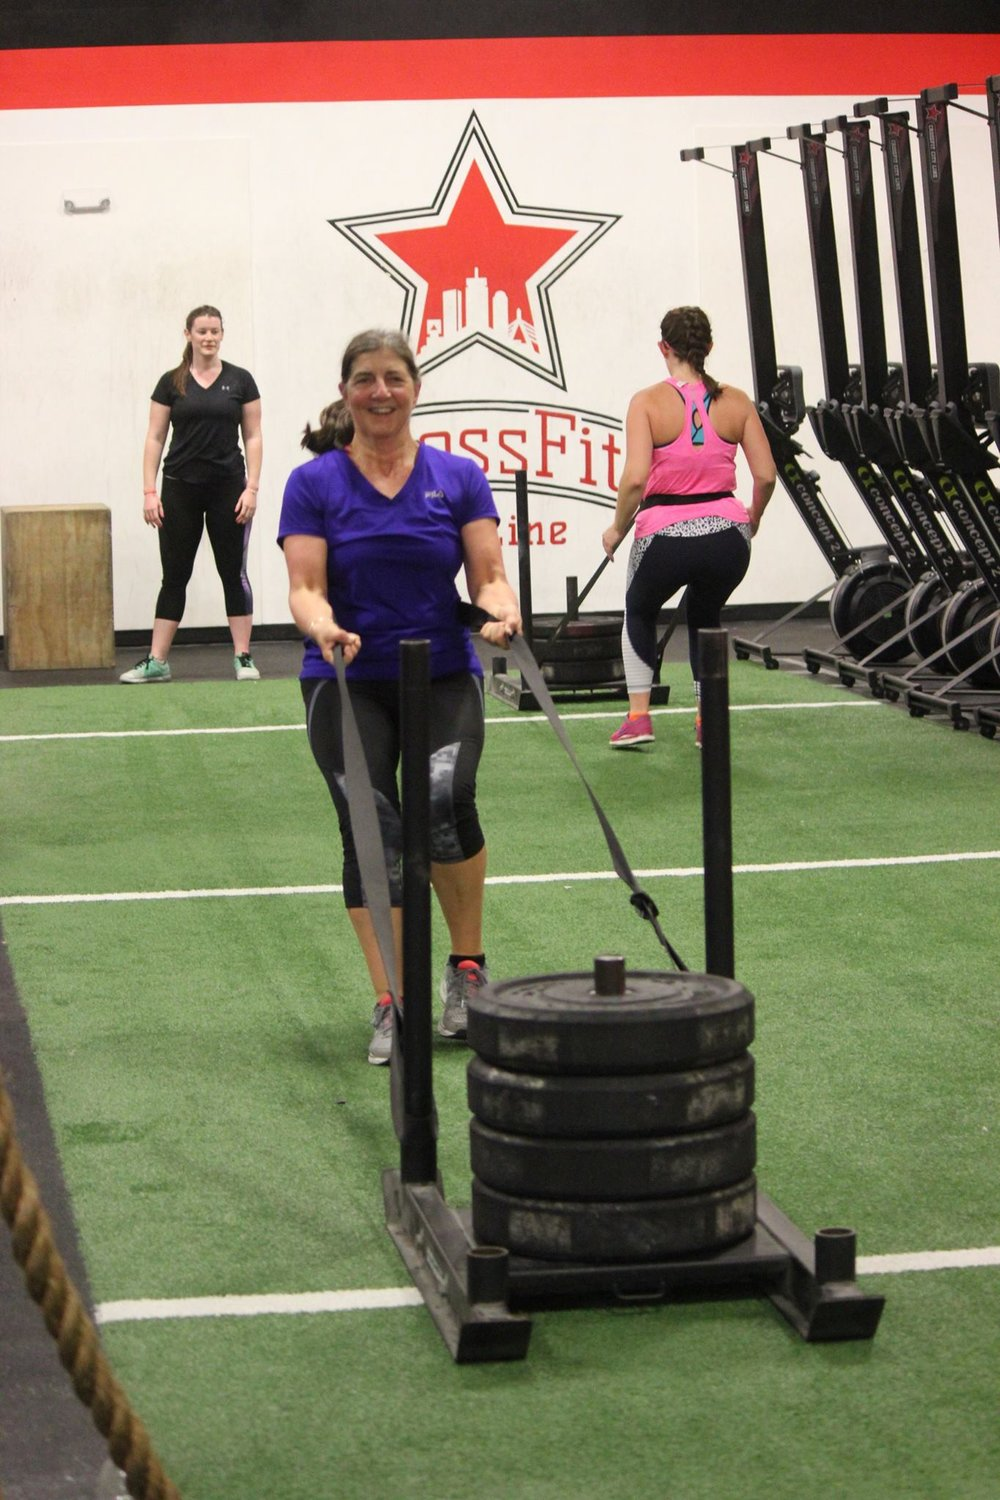 No stack of plates is too heavy to keep Marianne down!